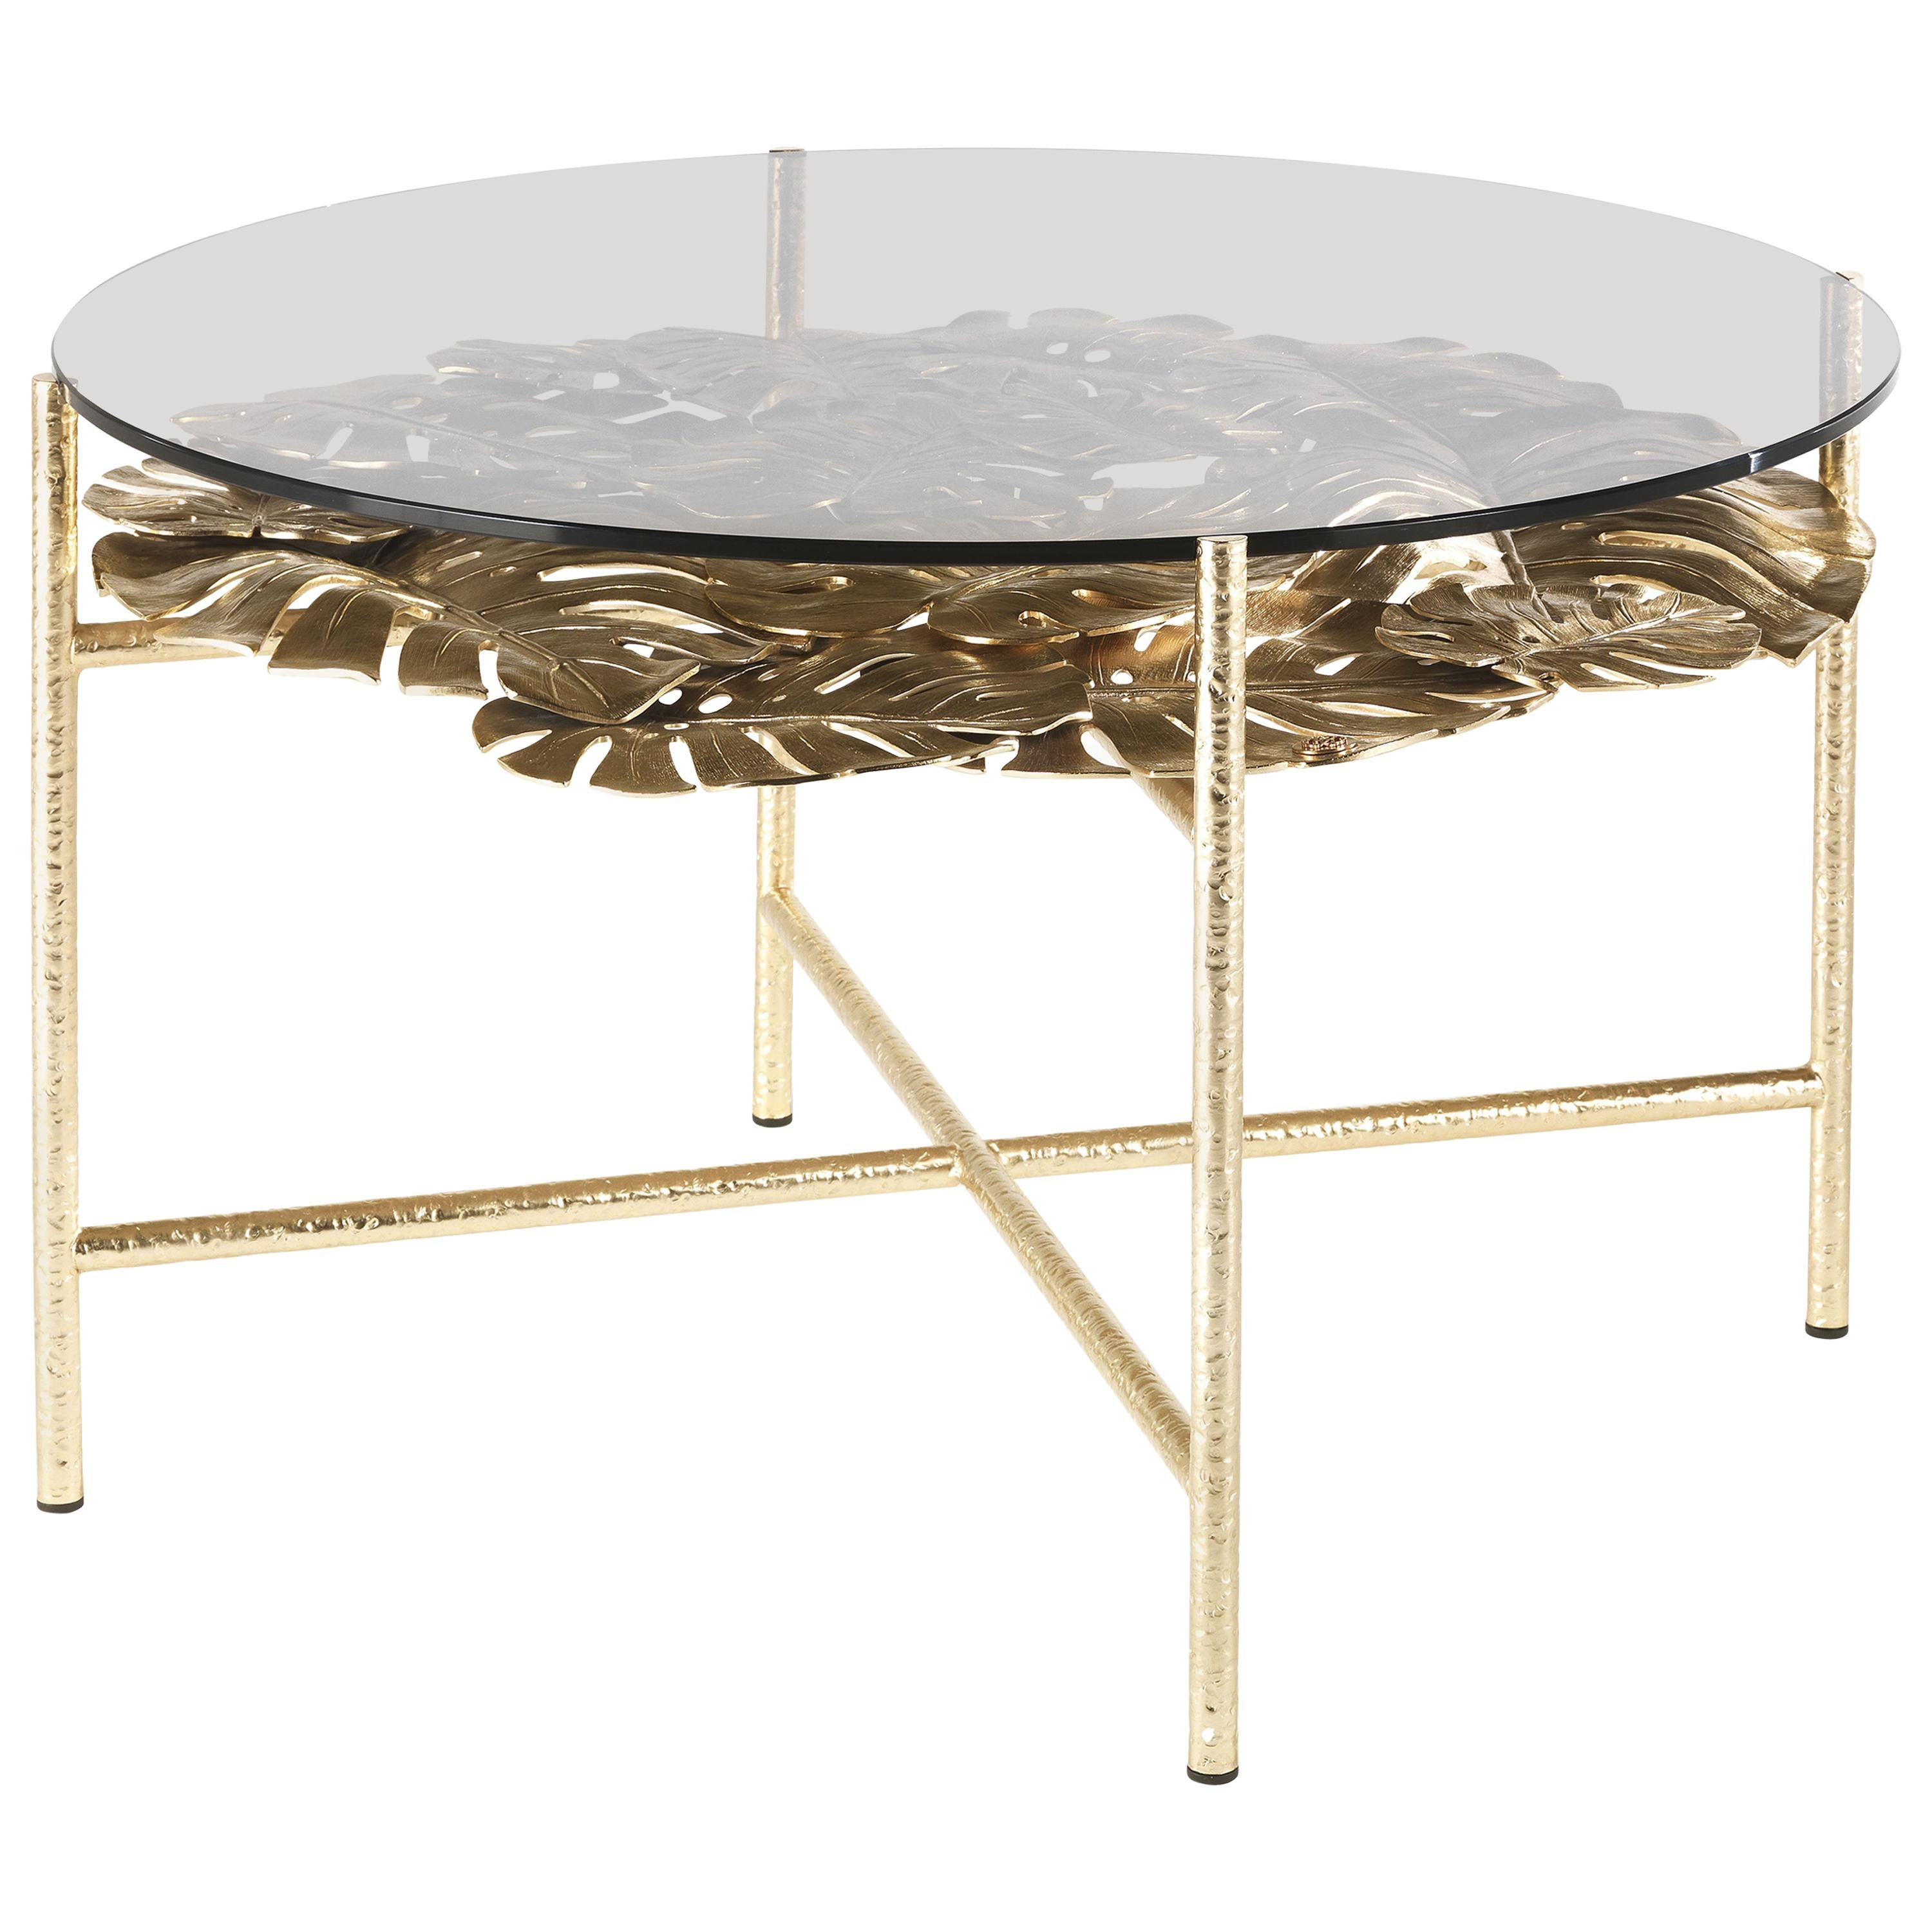 Maui Side Table in Brass by Roberto Cavalli Home Interiors